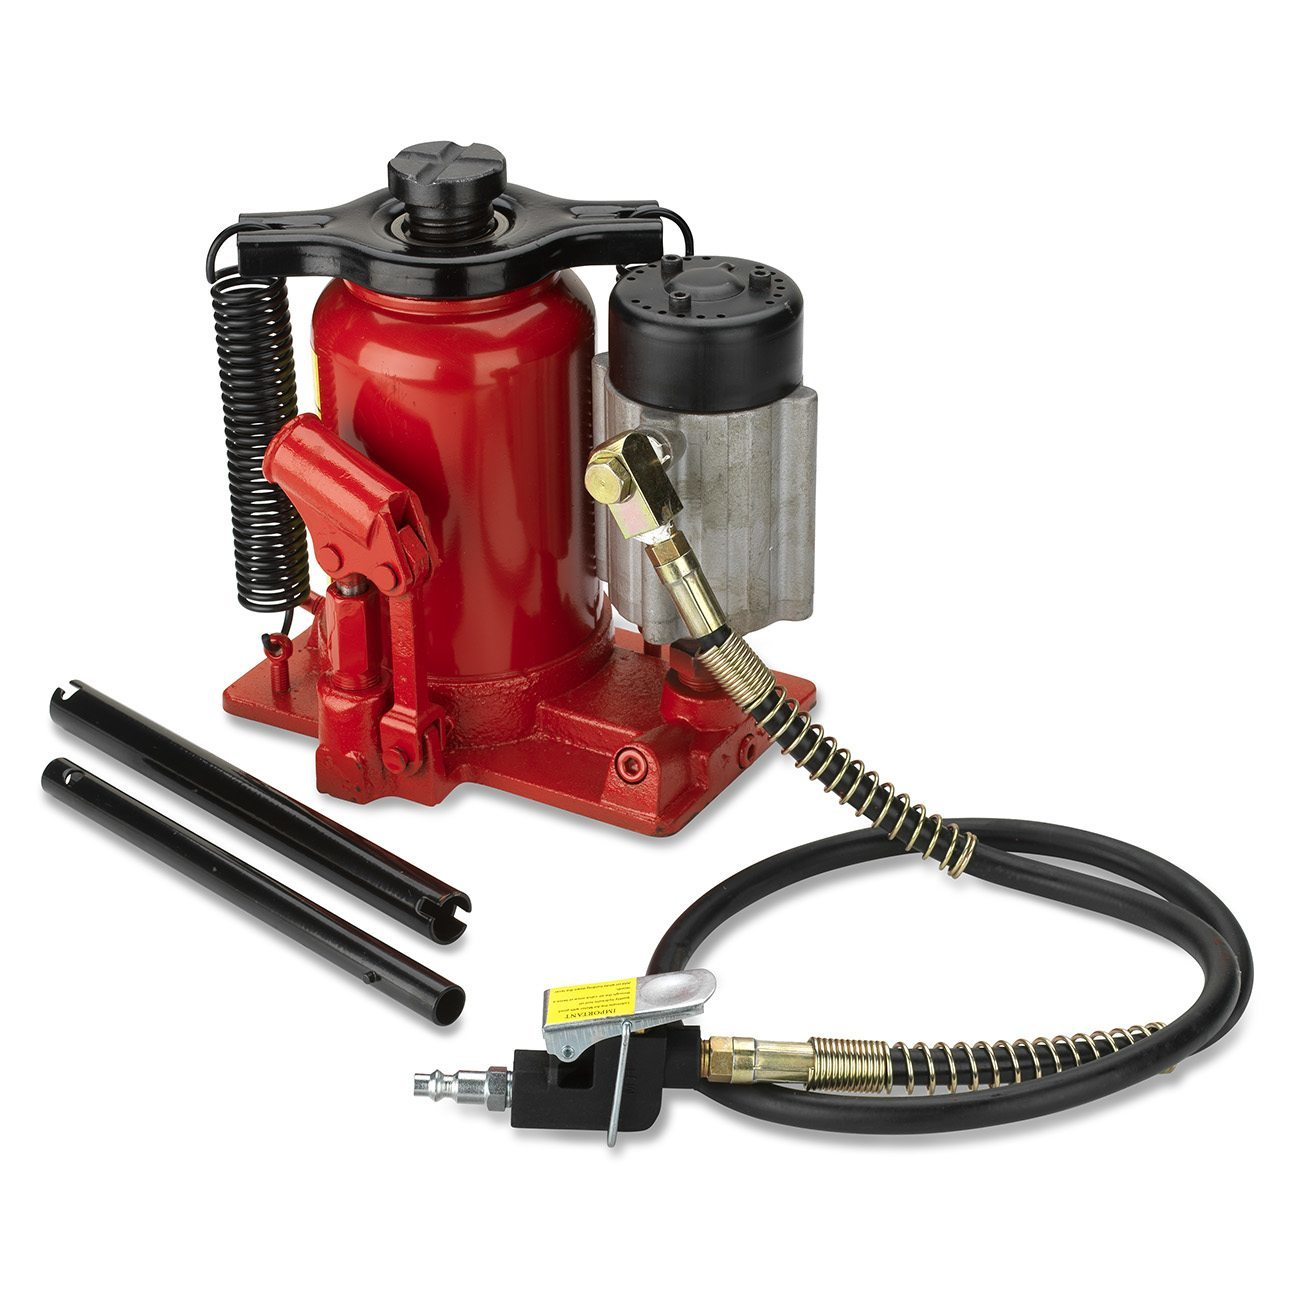 Tooluxe 20 Ton Air / Manual Pneumatic Hydraulic Low Profile Bottle Jack Lift Tool